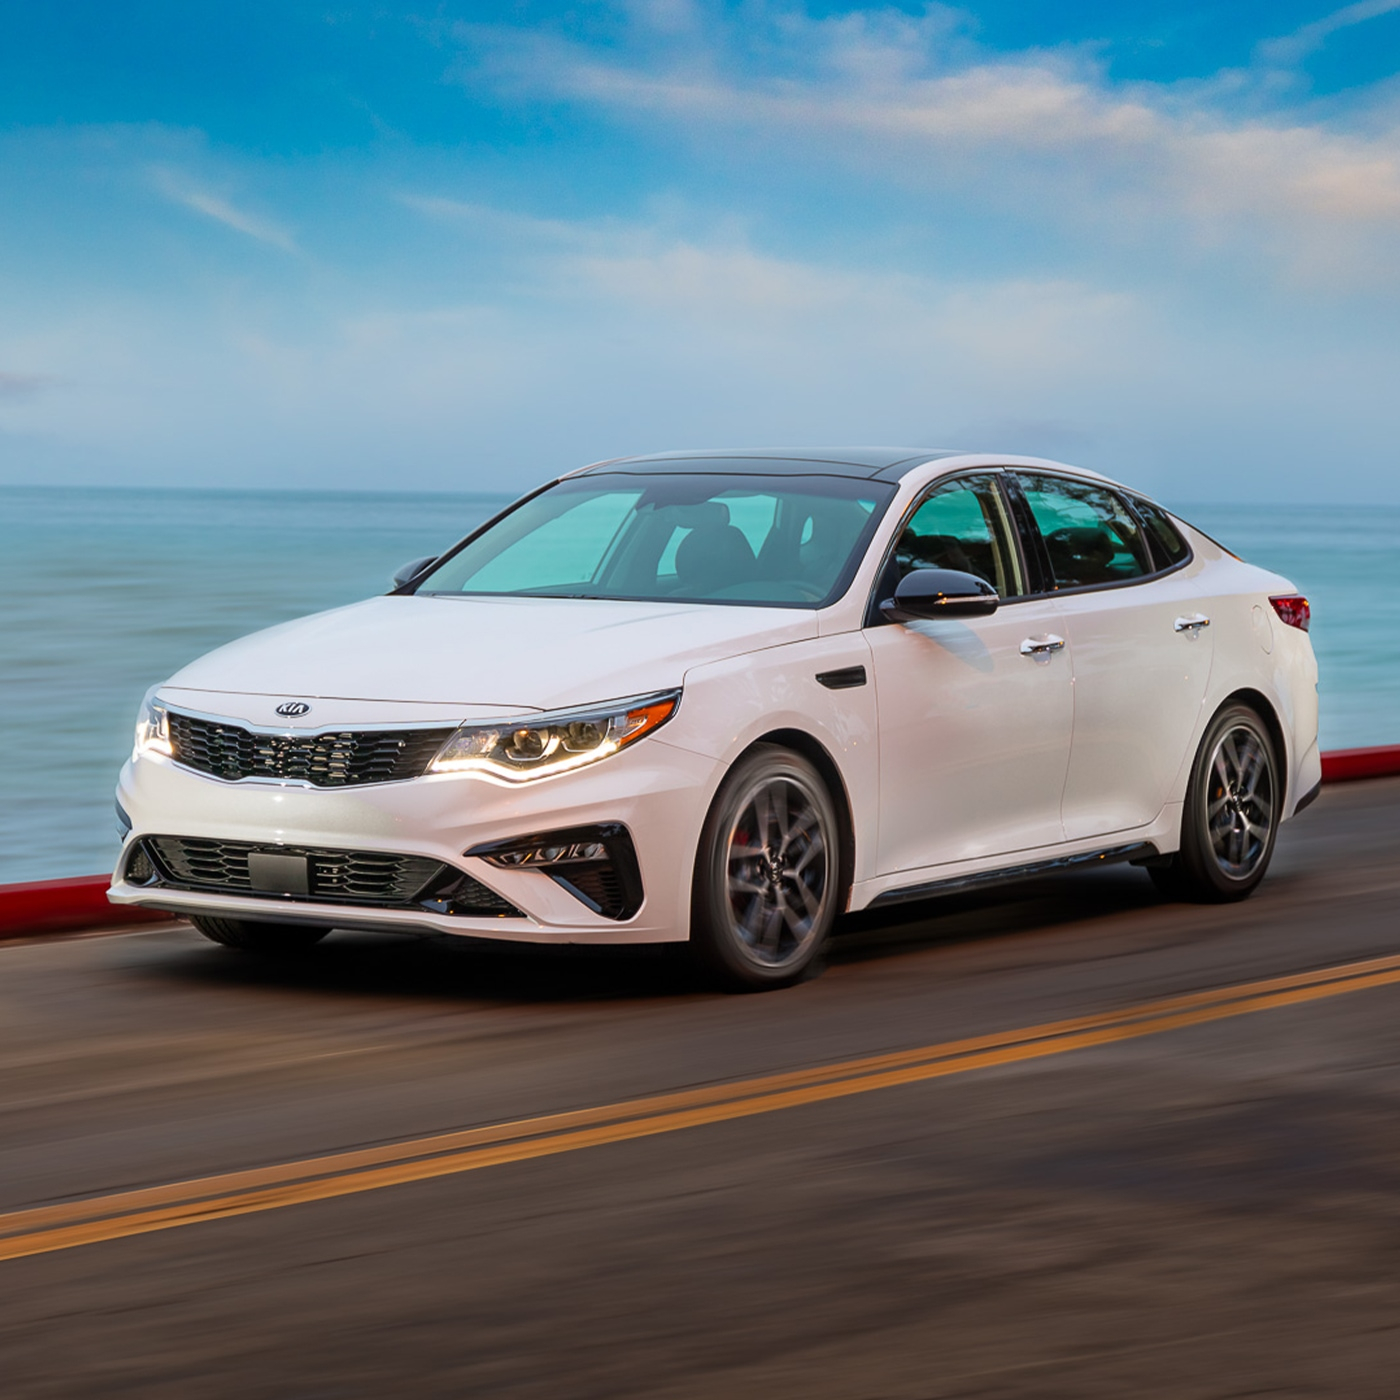 2020 Kia Optima - Mid-Size Sedan Pricing & Features | Kia - 2022 Kia Optima Grey Configurations, Safety Update, Specs